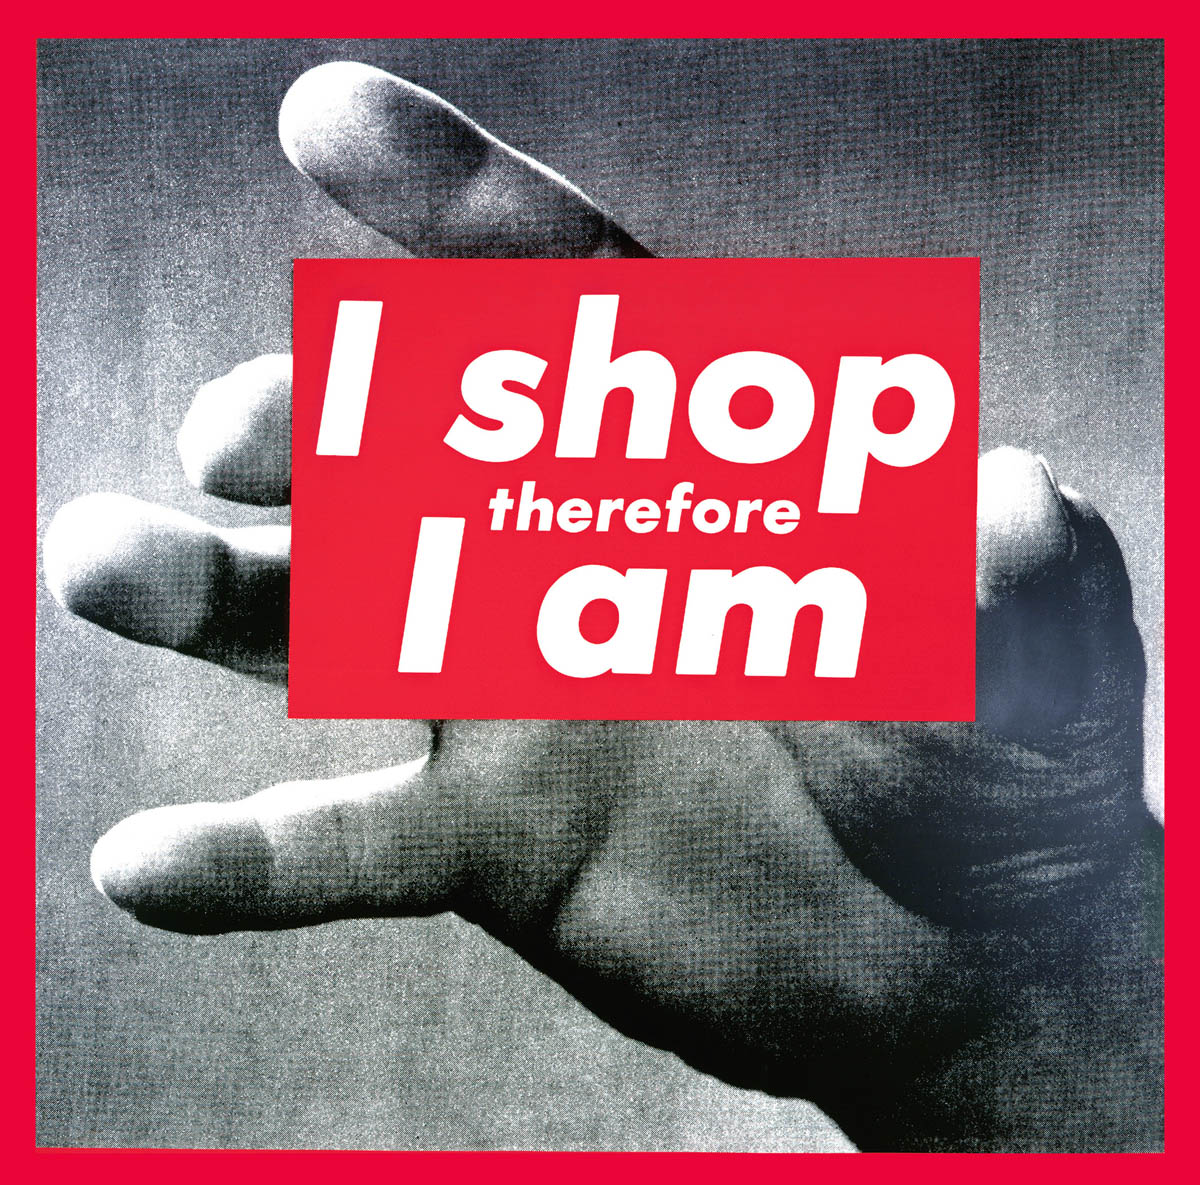 I shop therefore I am, 1989